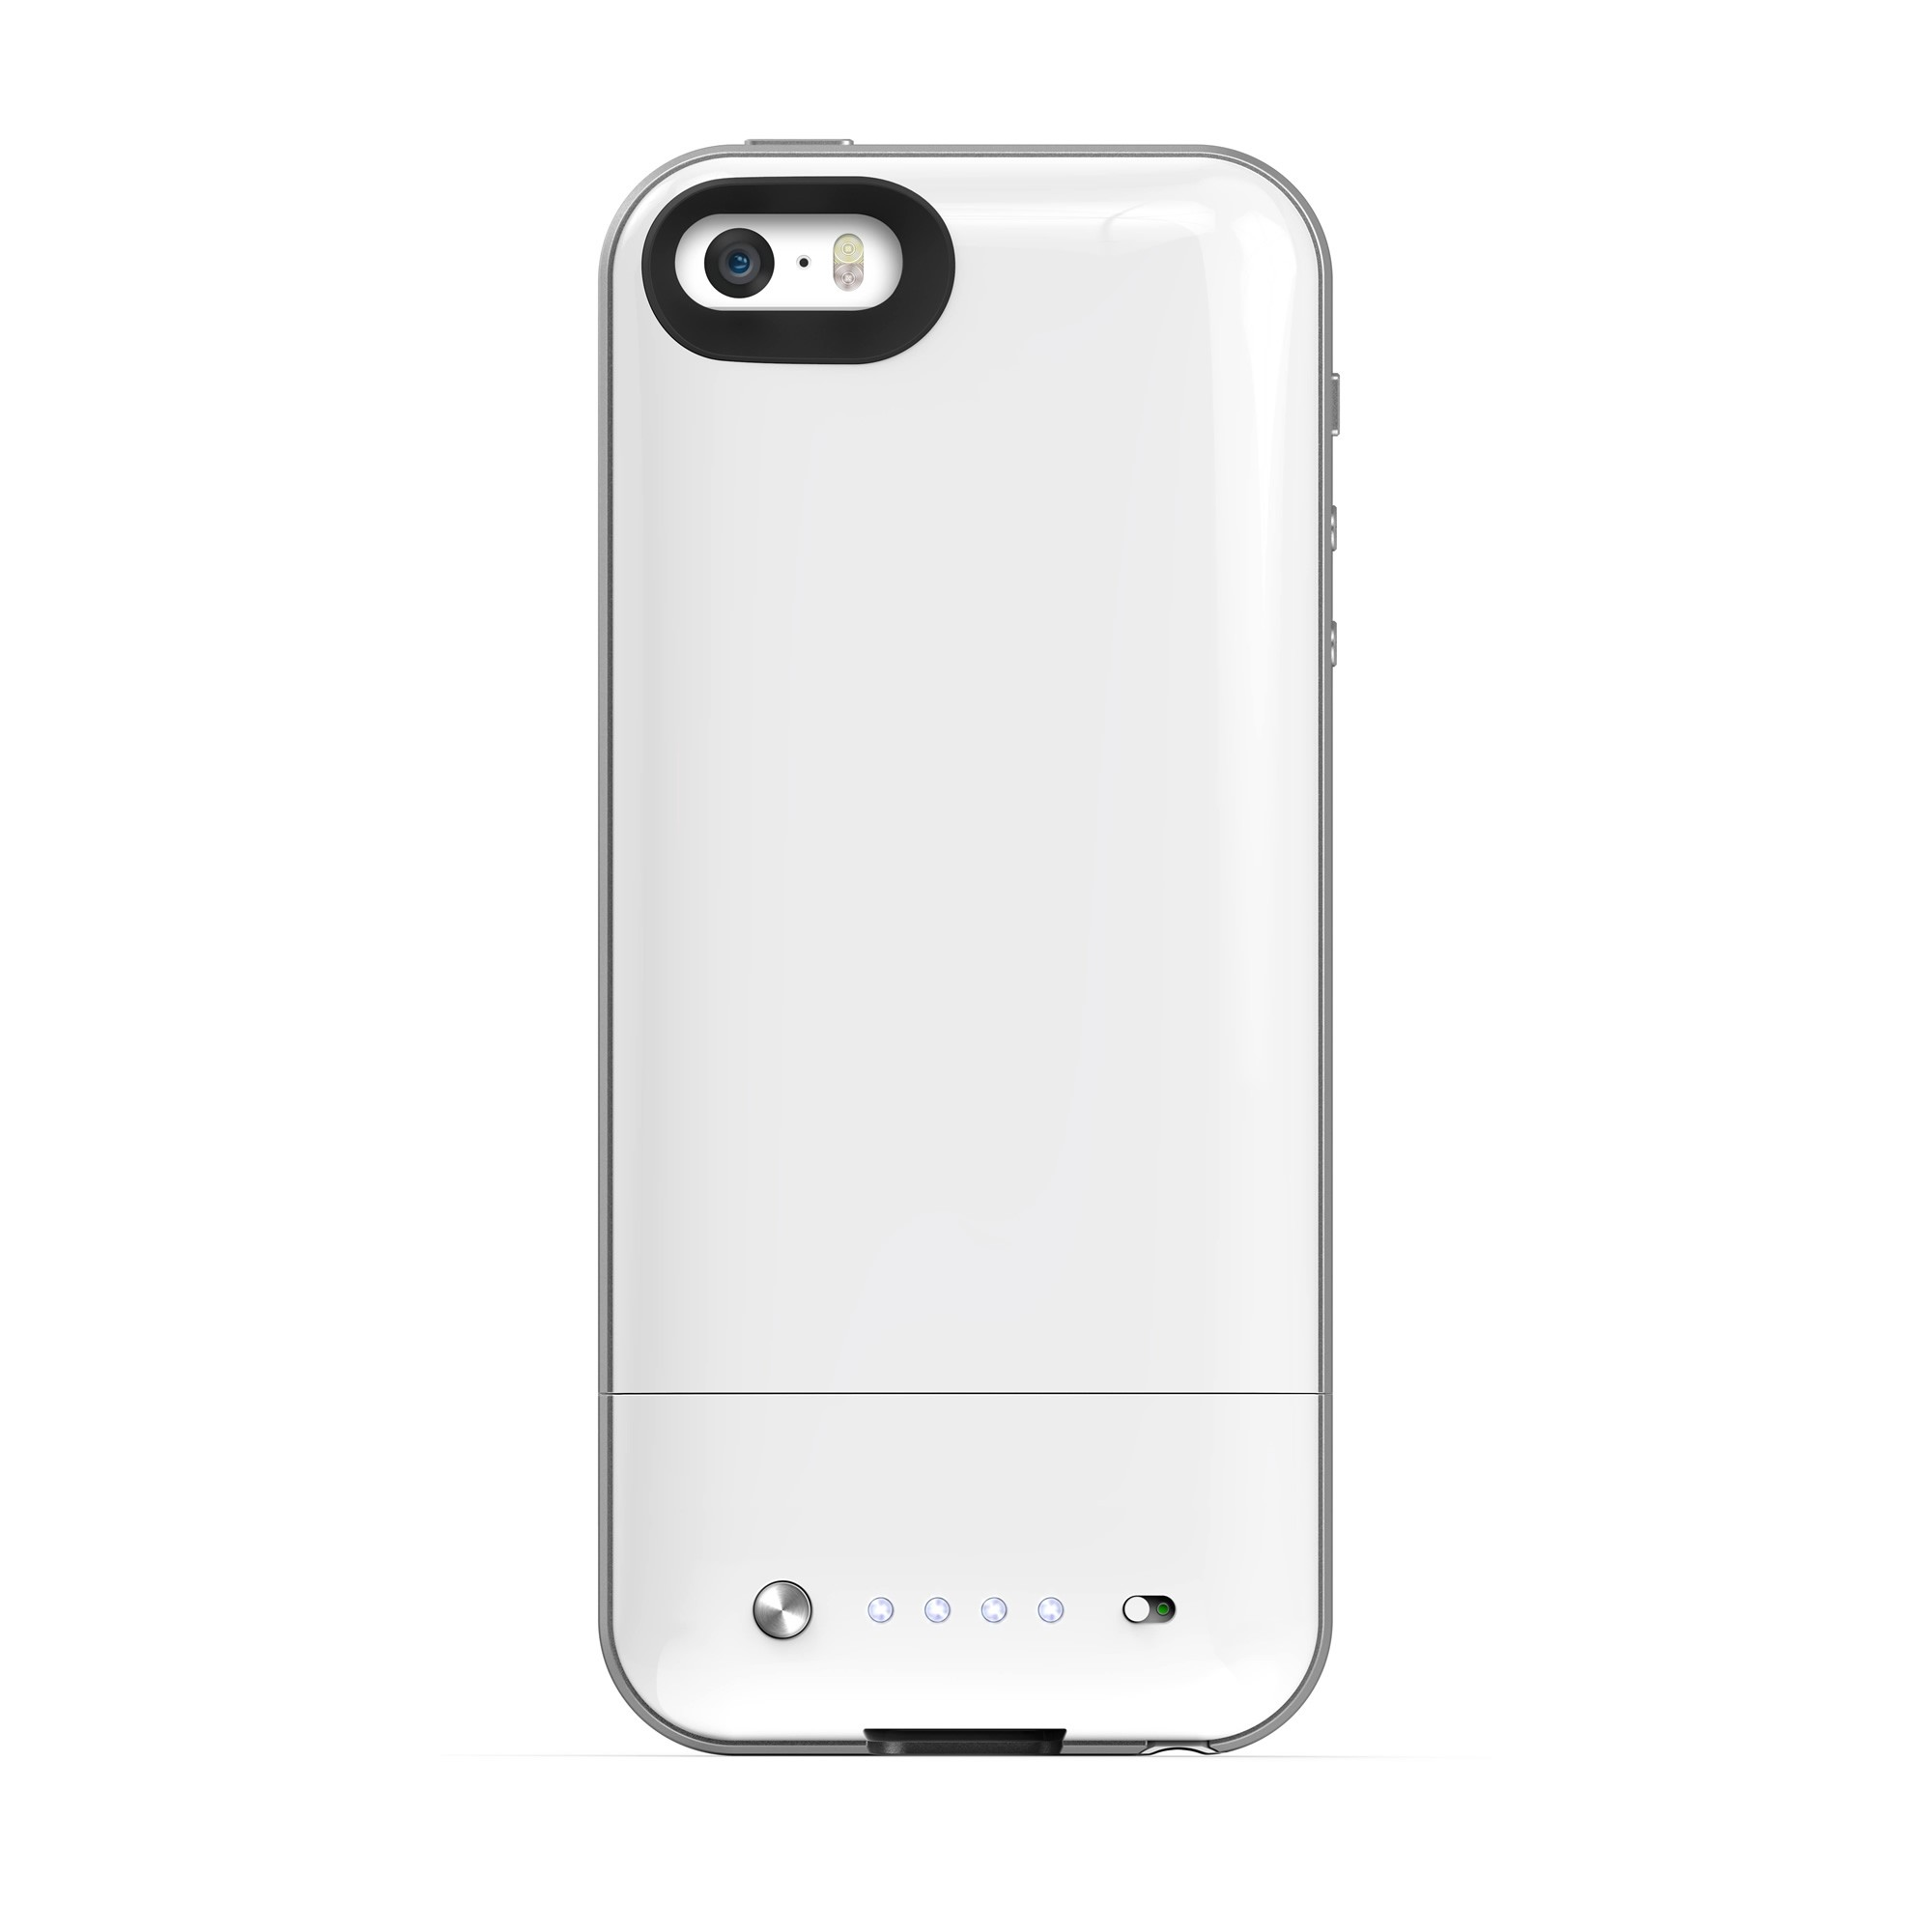 iphone 5s storage mophie spacepack battery w built in 32gb storage for 11254